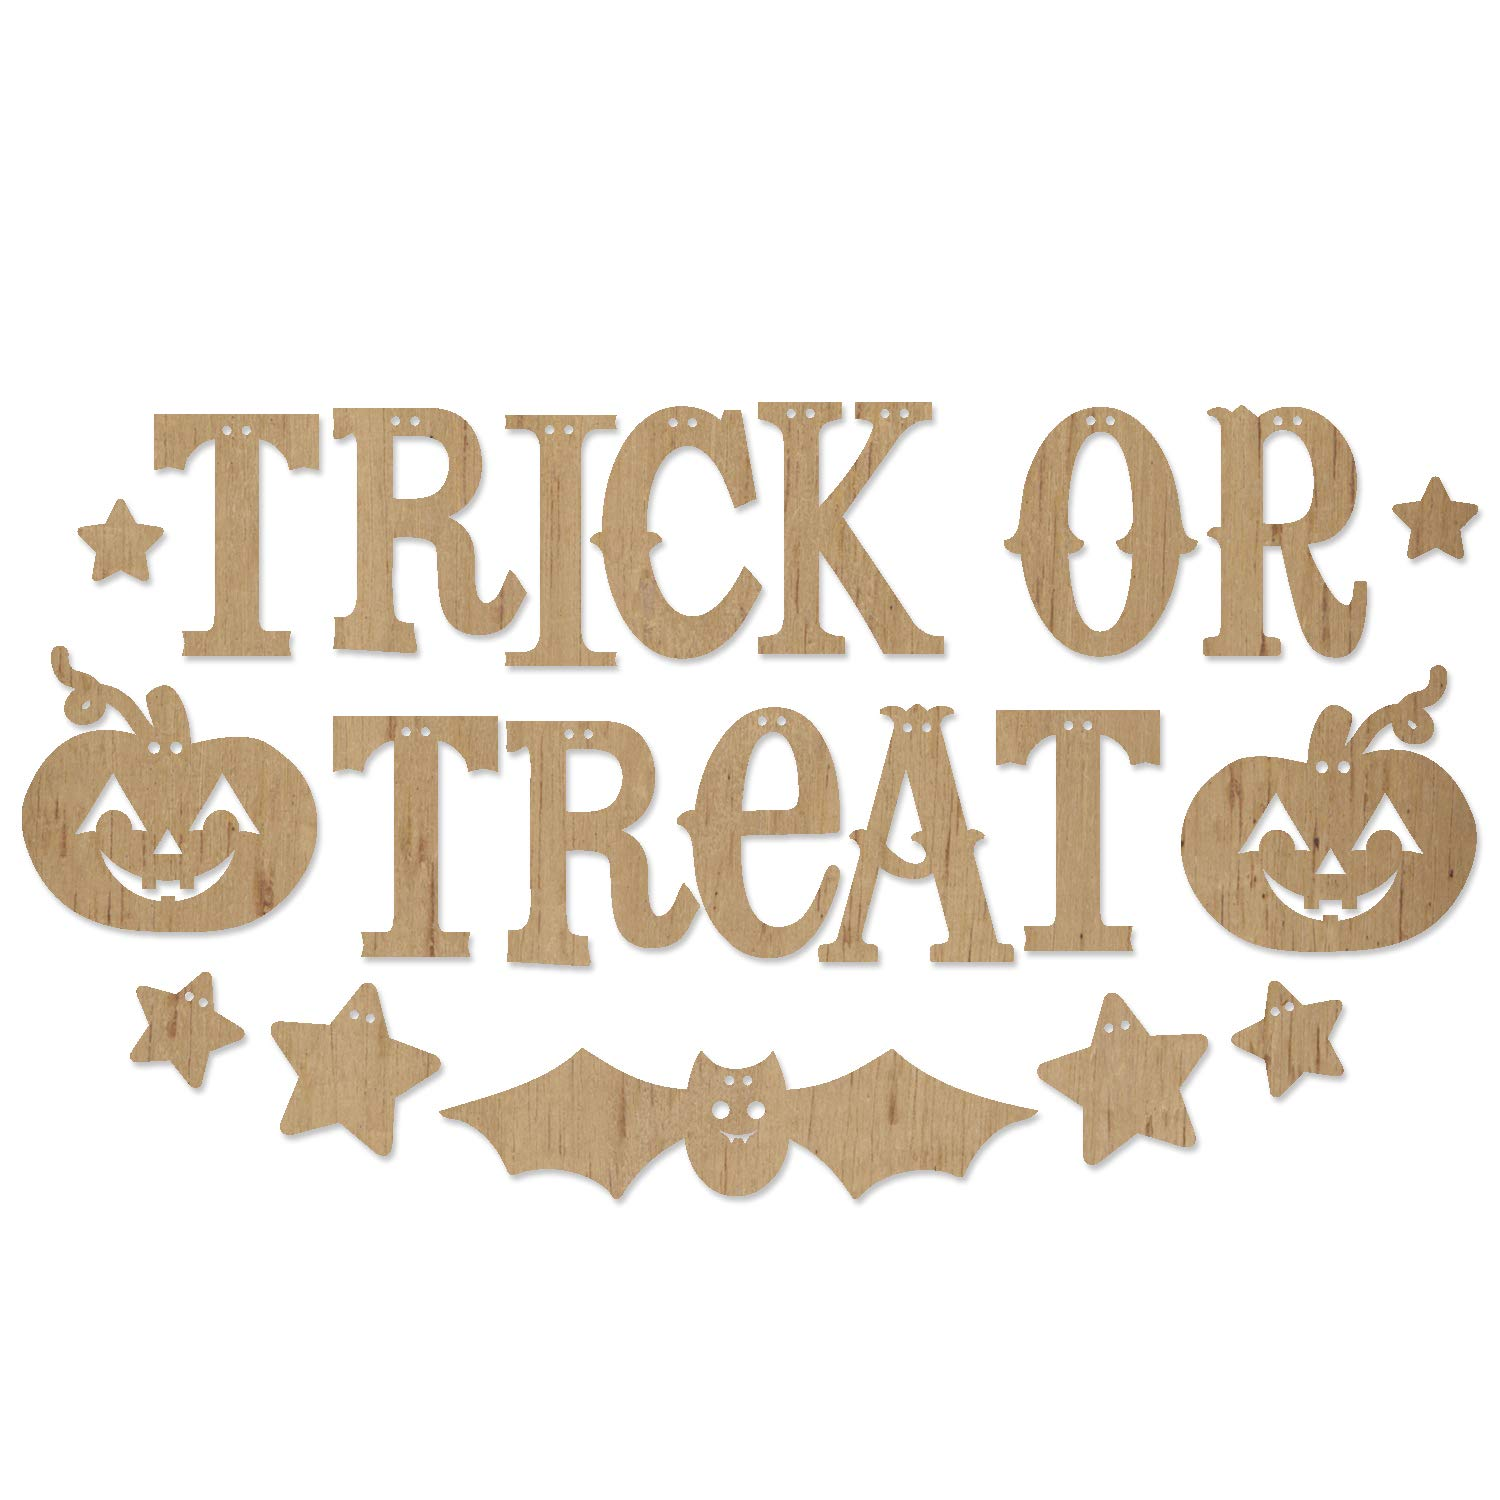 ADORNit DIY Wood Swag Banner Hanger - Trick or Treat